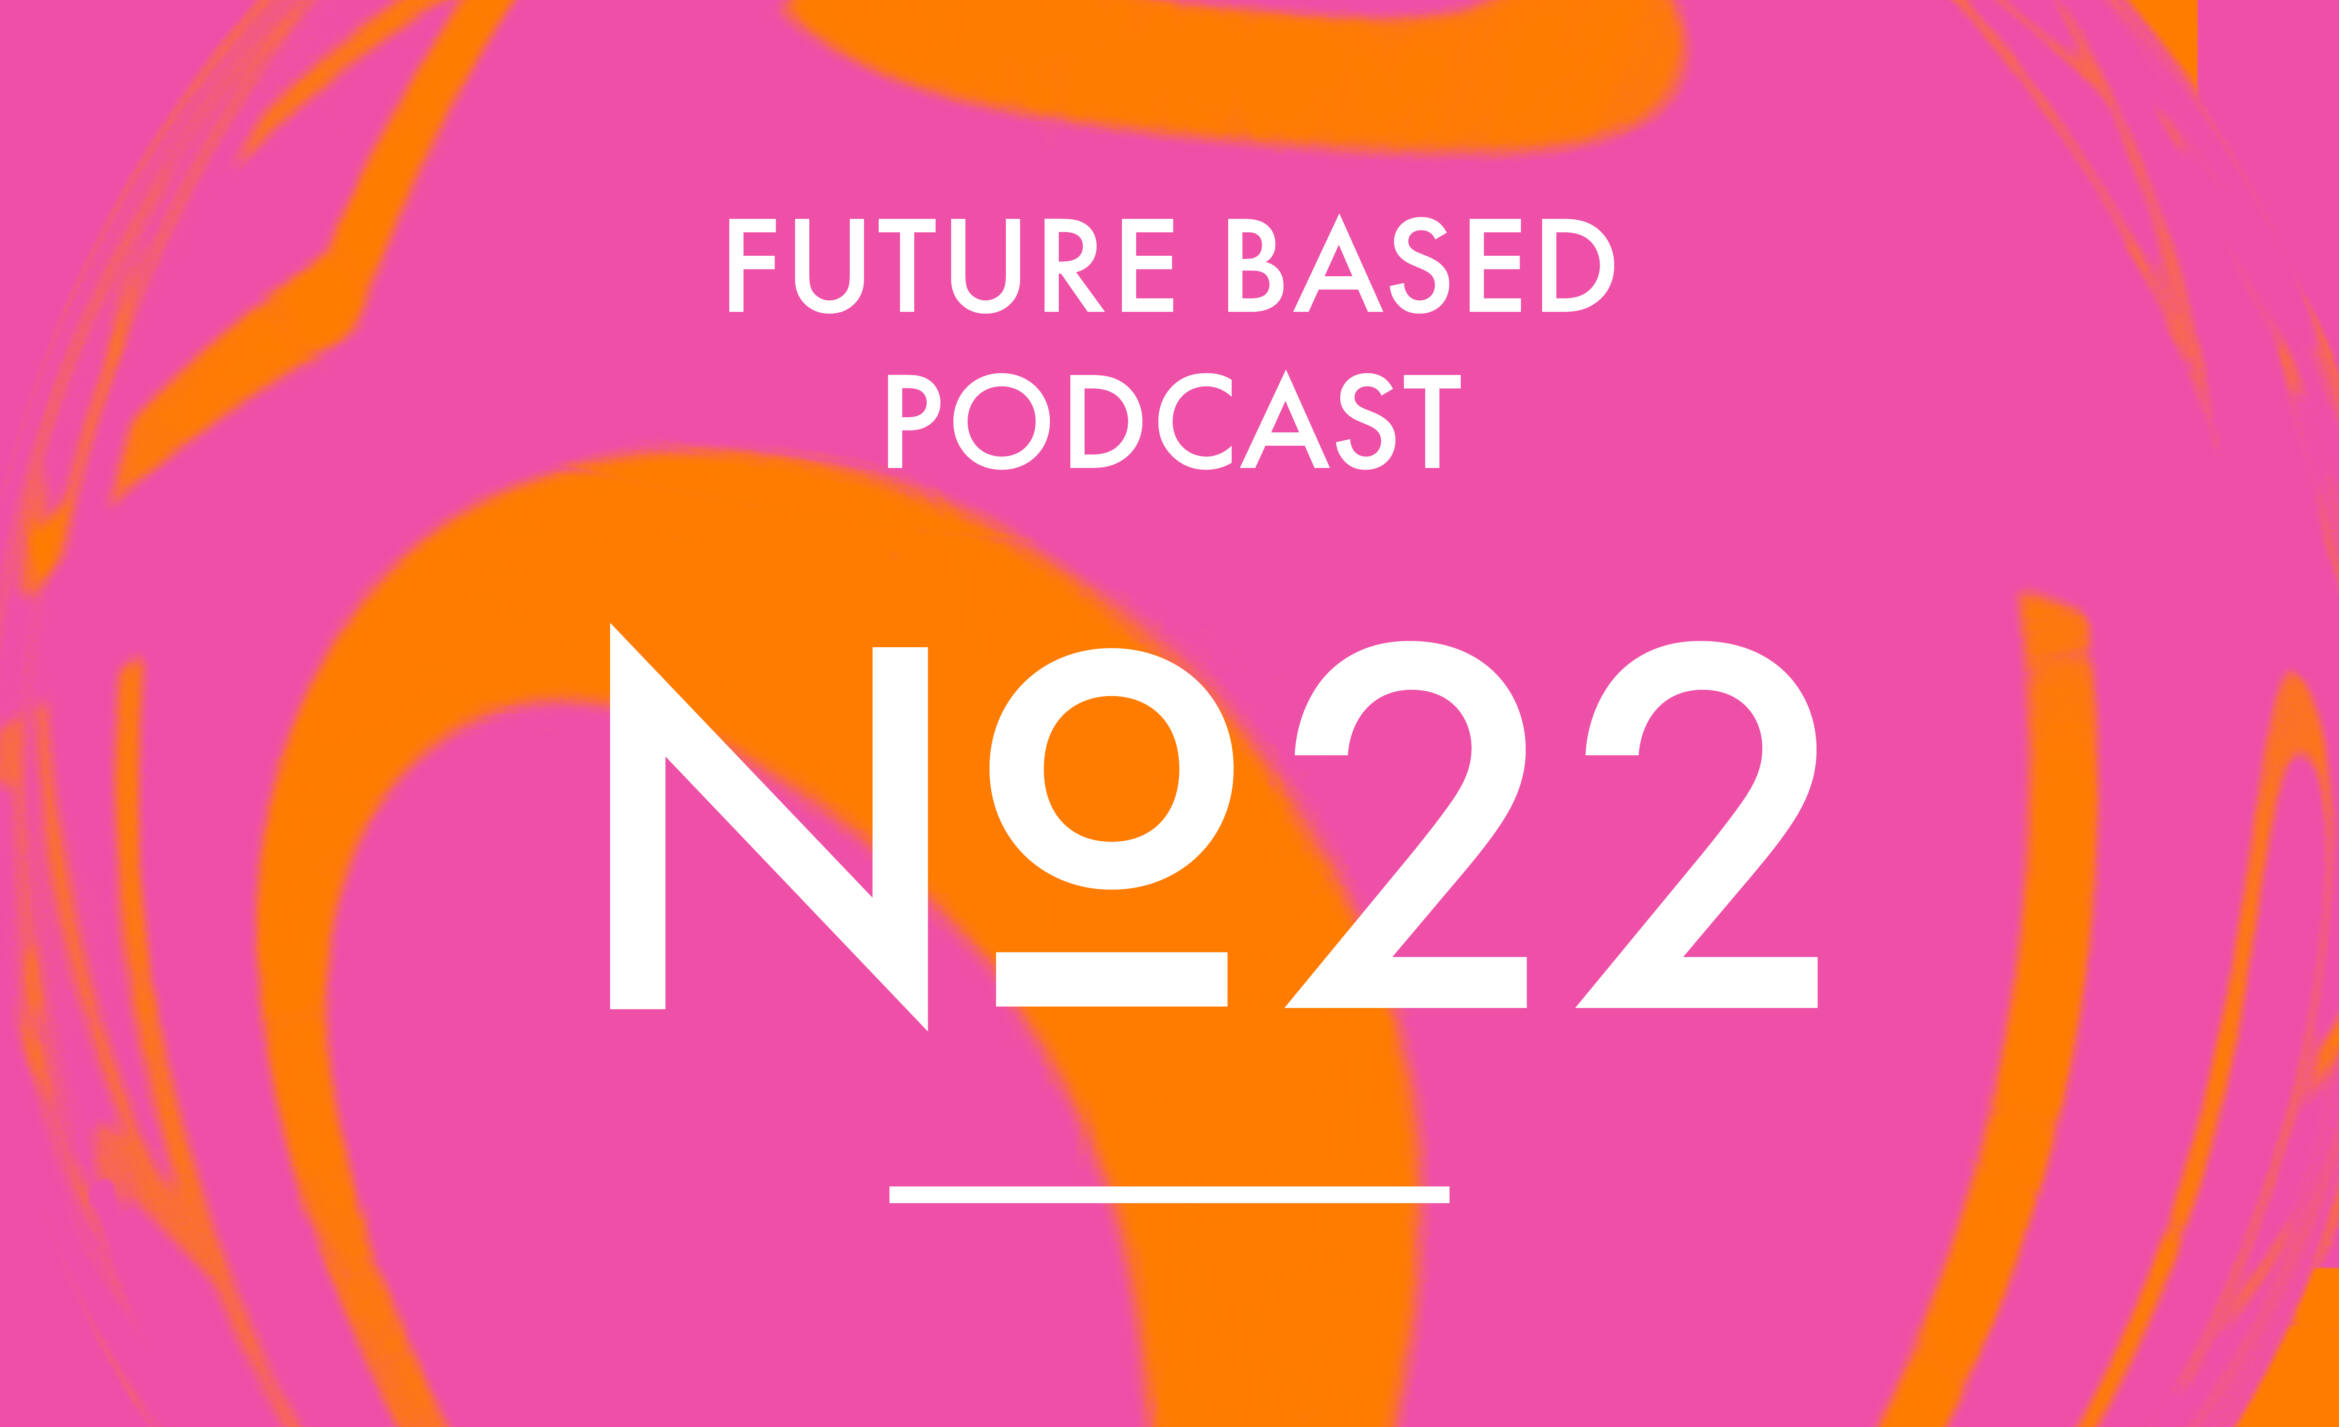 Future Based Podcast